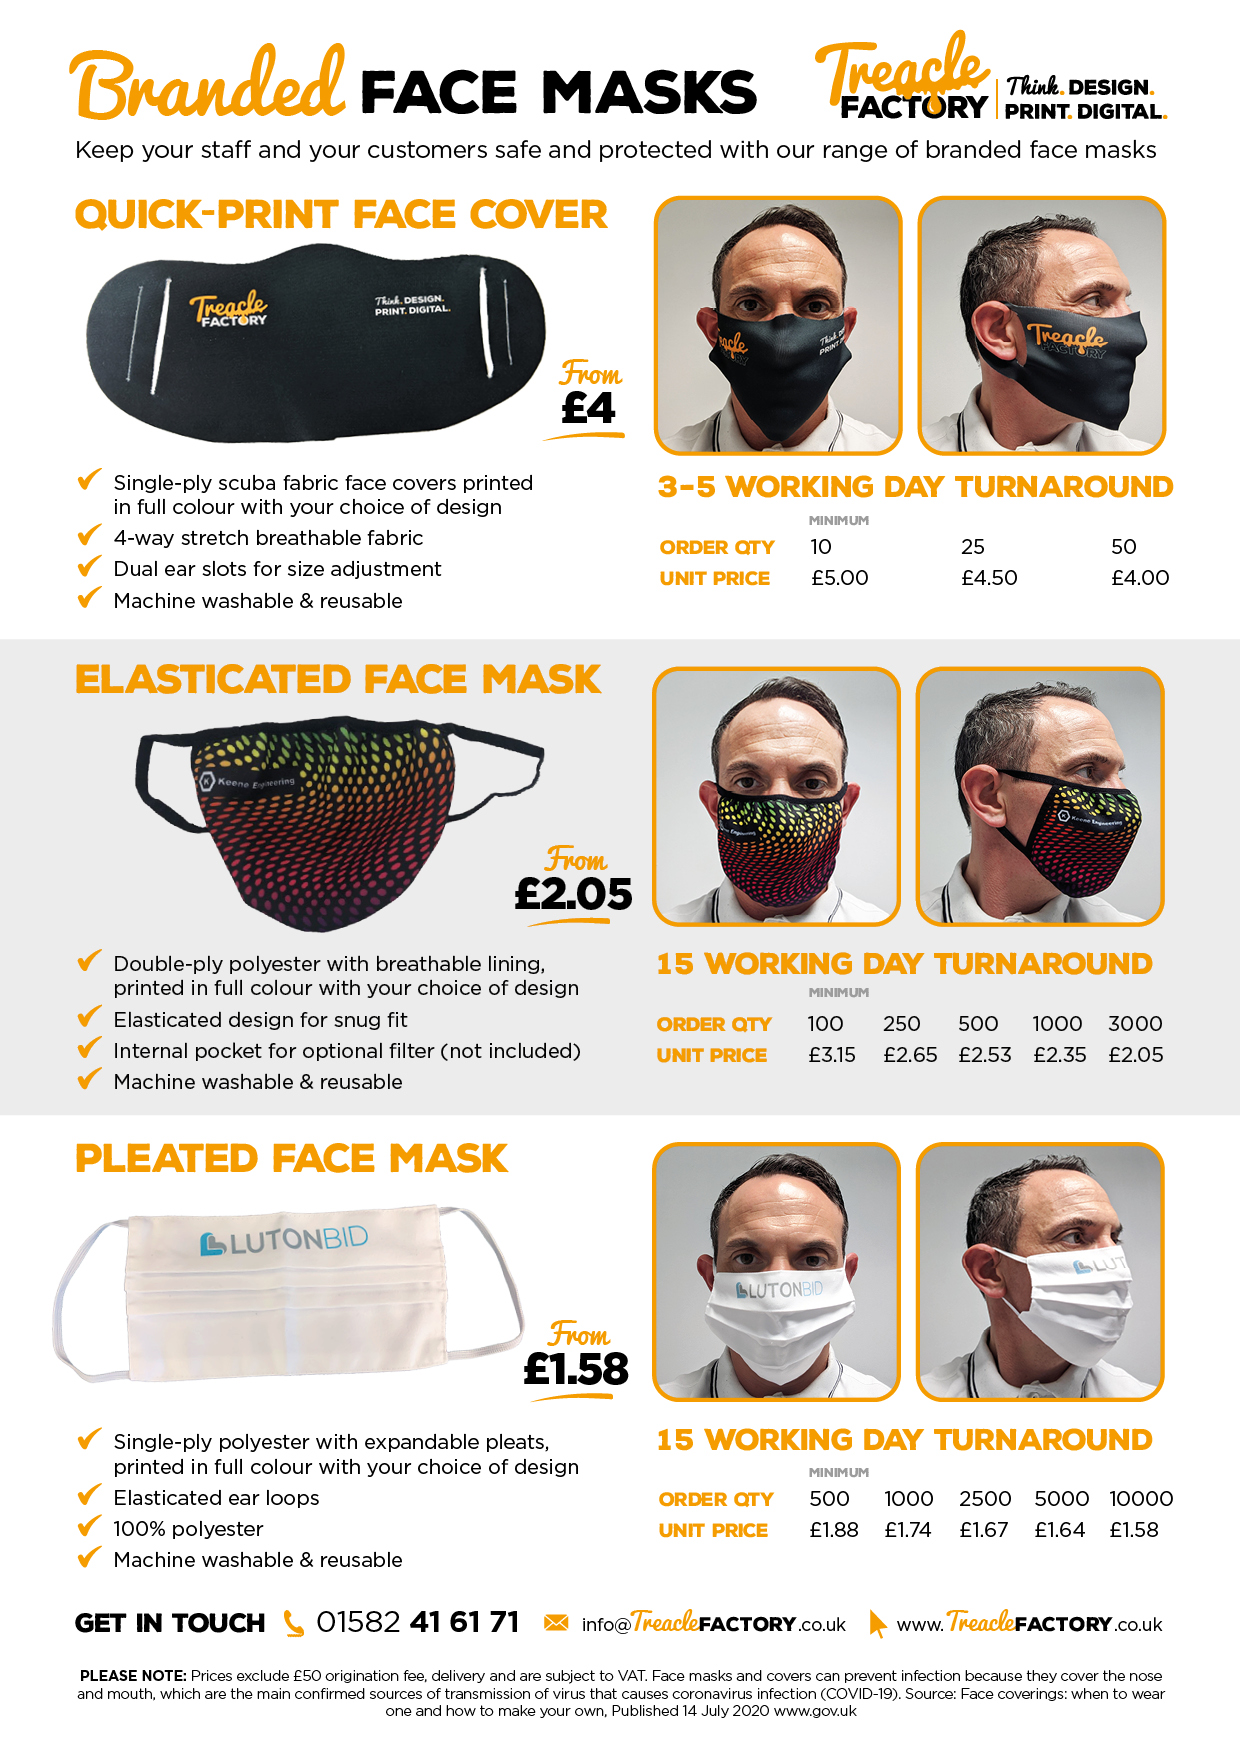 Branded Face Masks